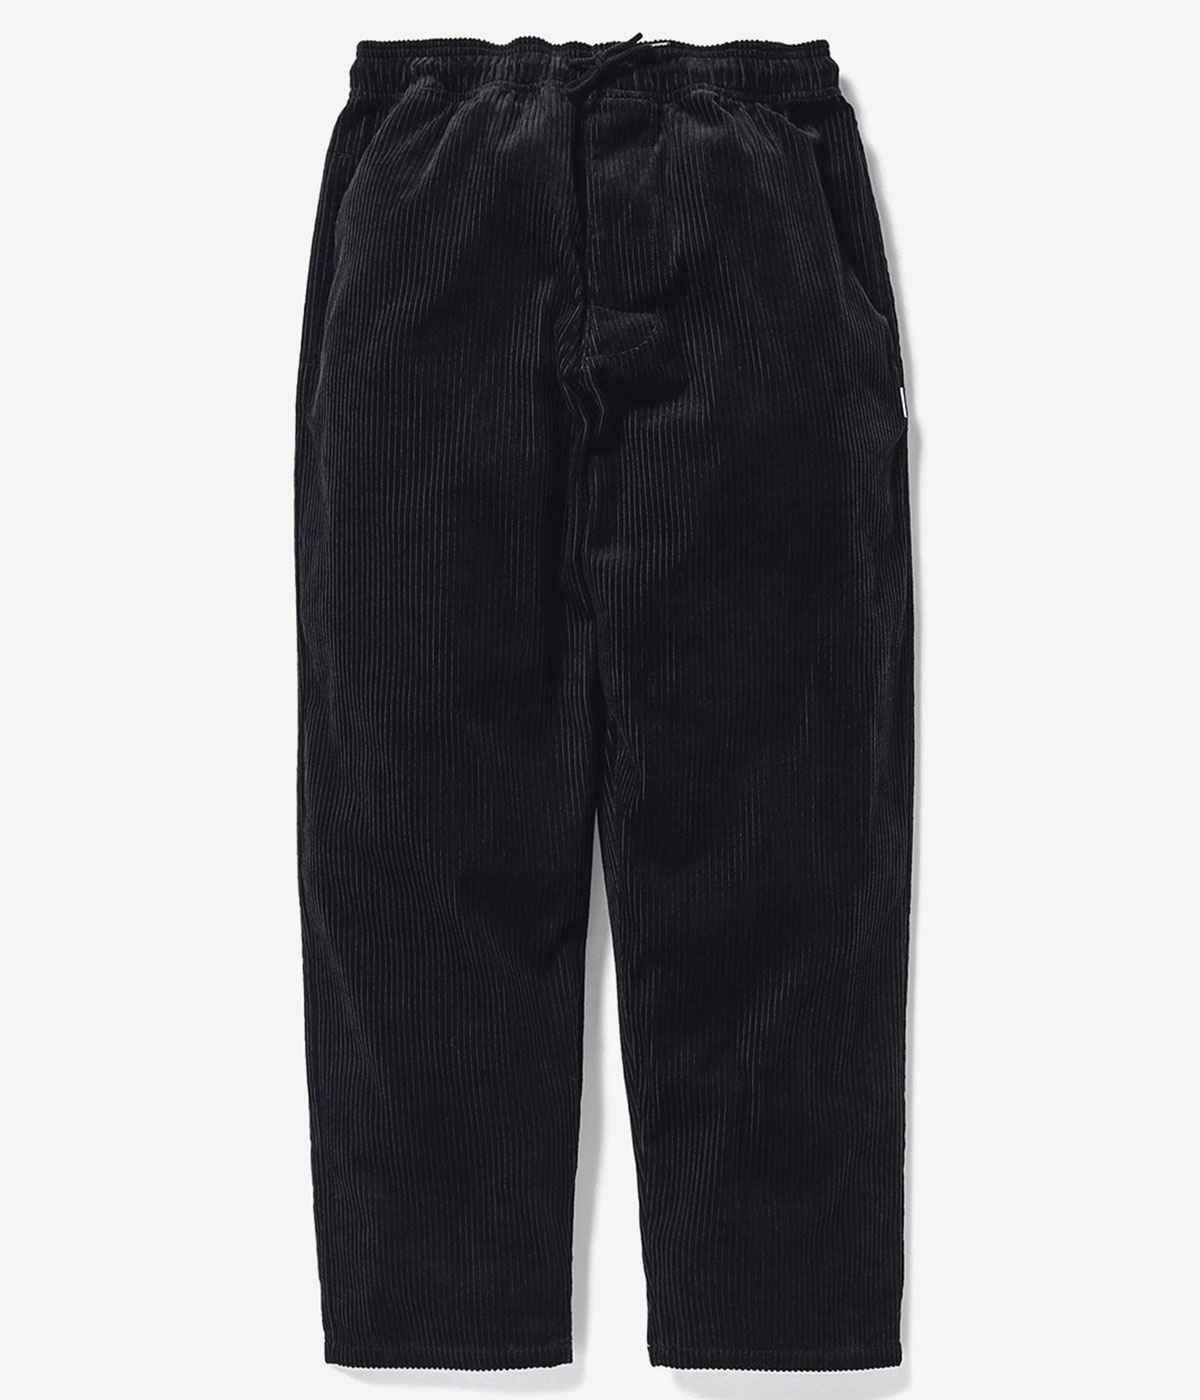 CHEF 02 / TROUSERS. COTTON. CORDUROY